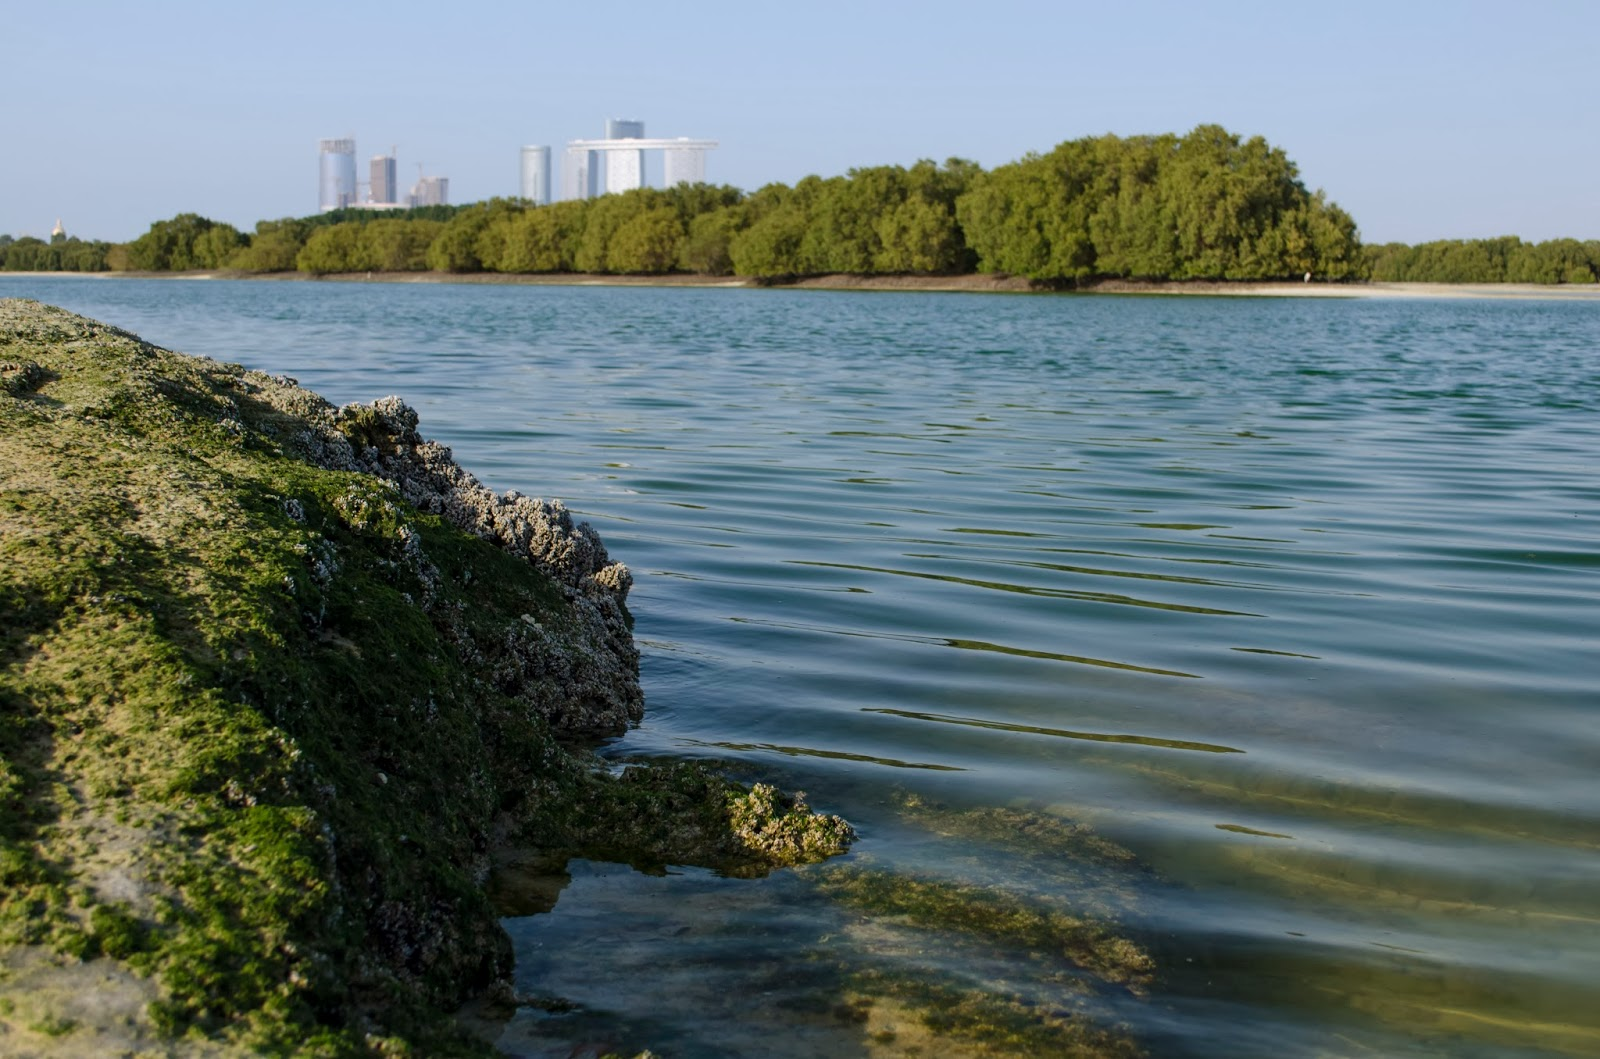 Rock, water and skyline of Abu Dhabi Mangroves - Photo by Adham Al Oka